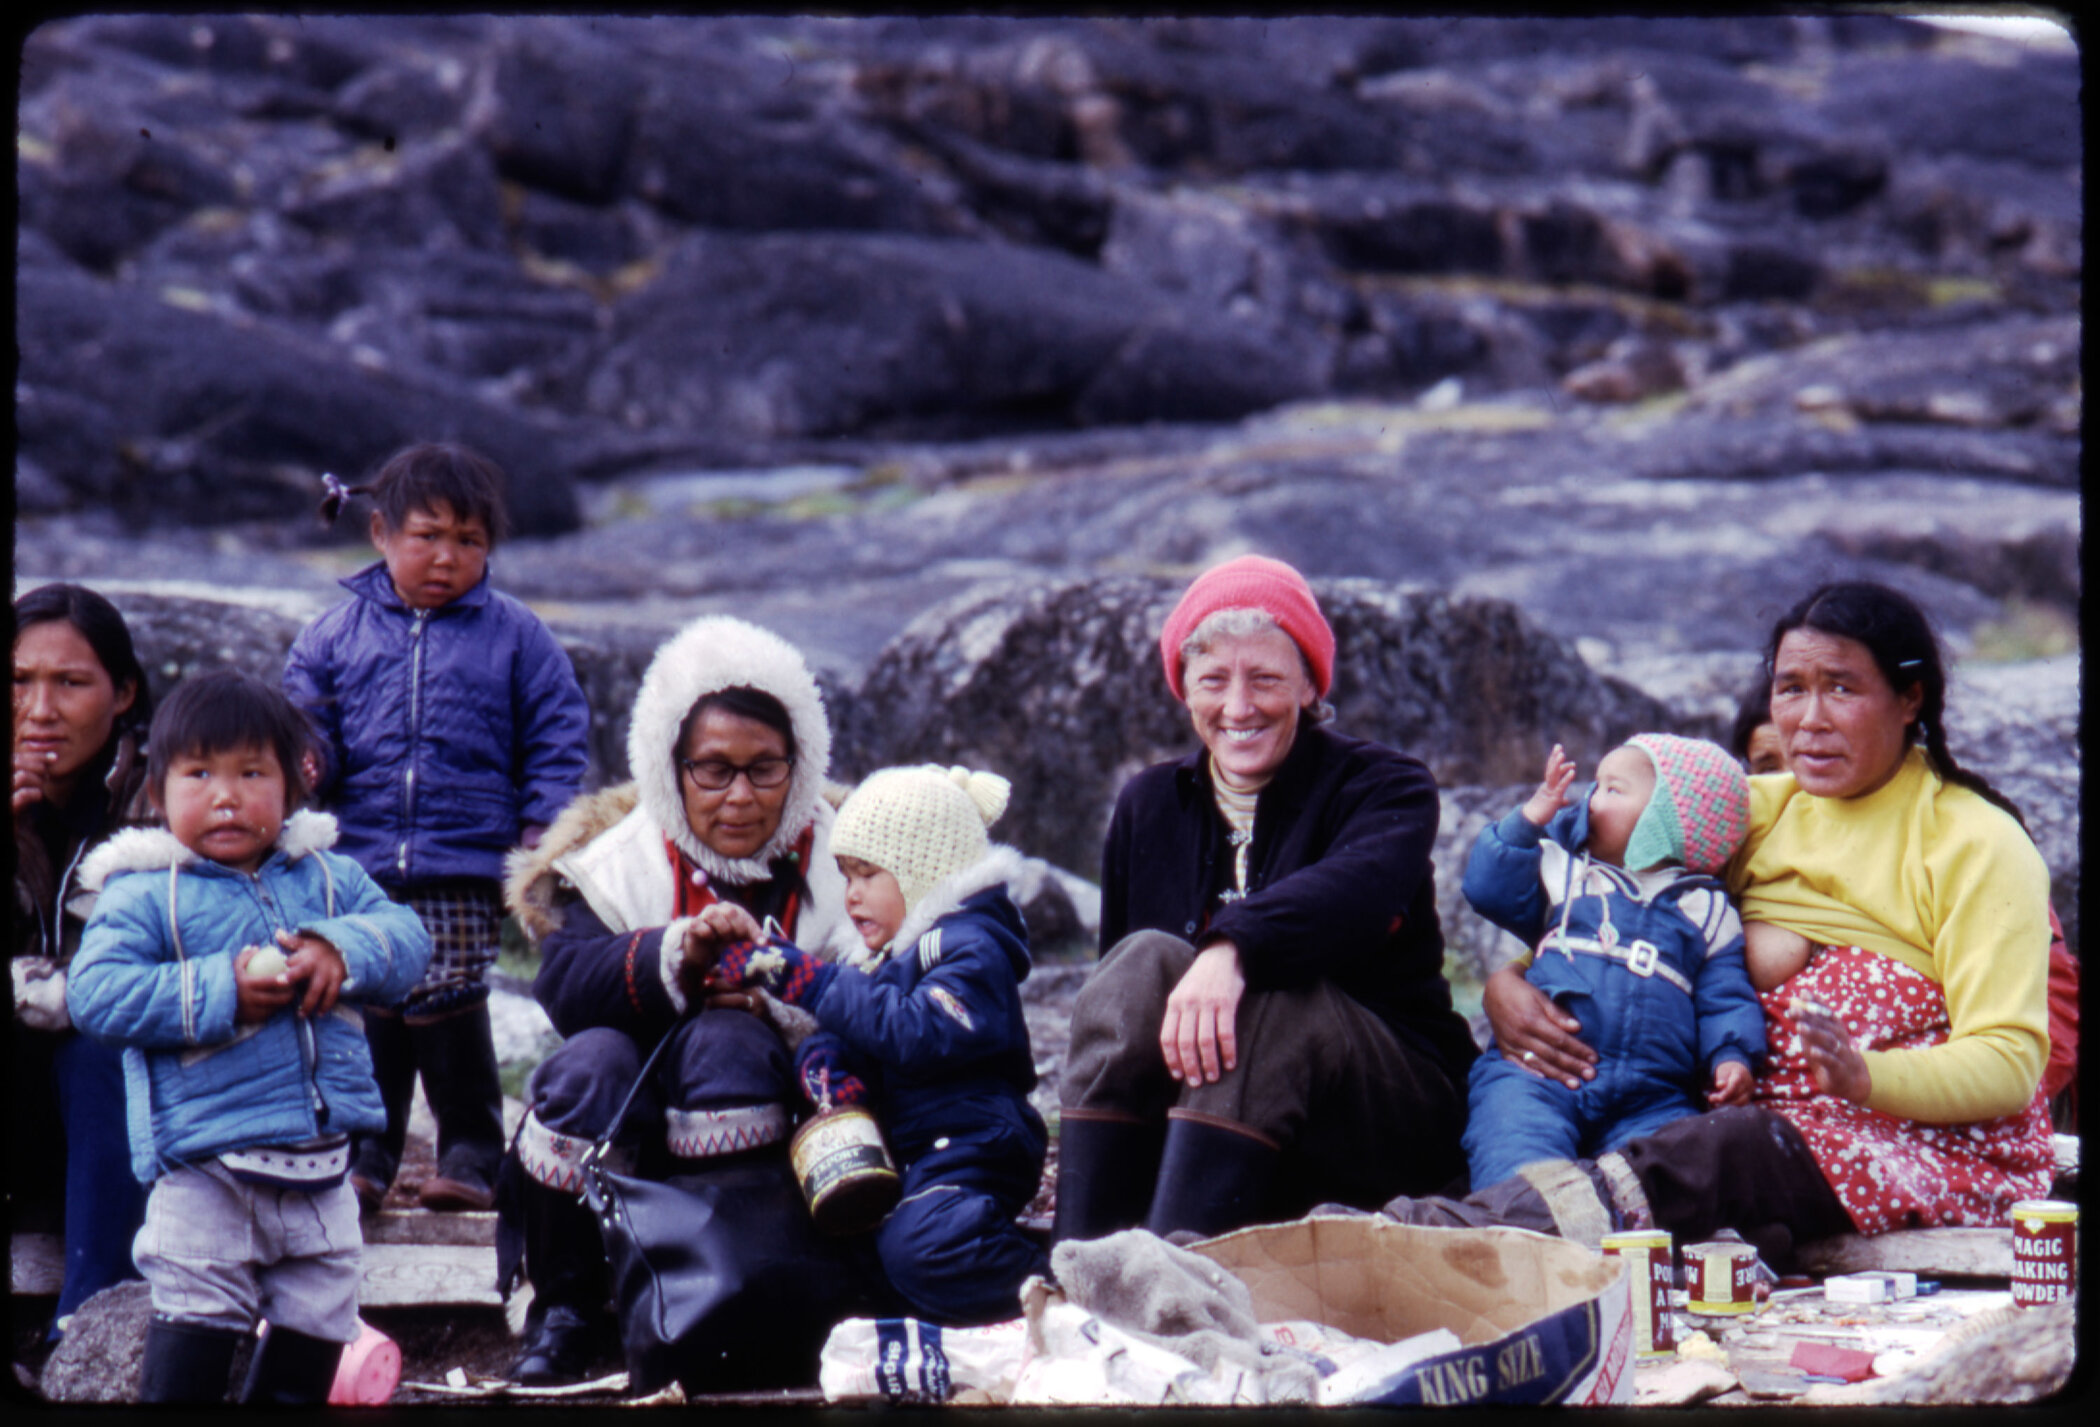 For more than 30 years, the Inuit welcomed anthropologist Jean Briggs into their lives so she could study how they raise their children. Briggs is pictured during a 1974 visit to Baffin Island. - Jean Briggs Collection / American Philosophical Society